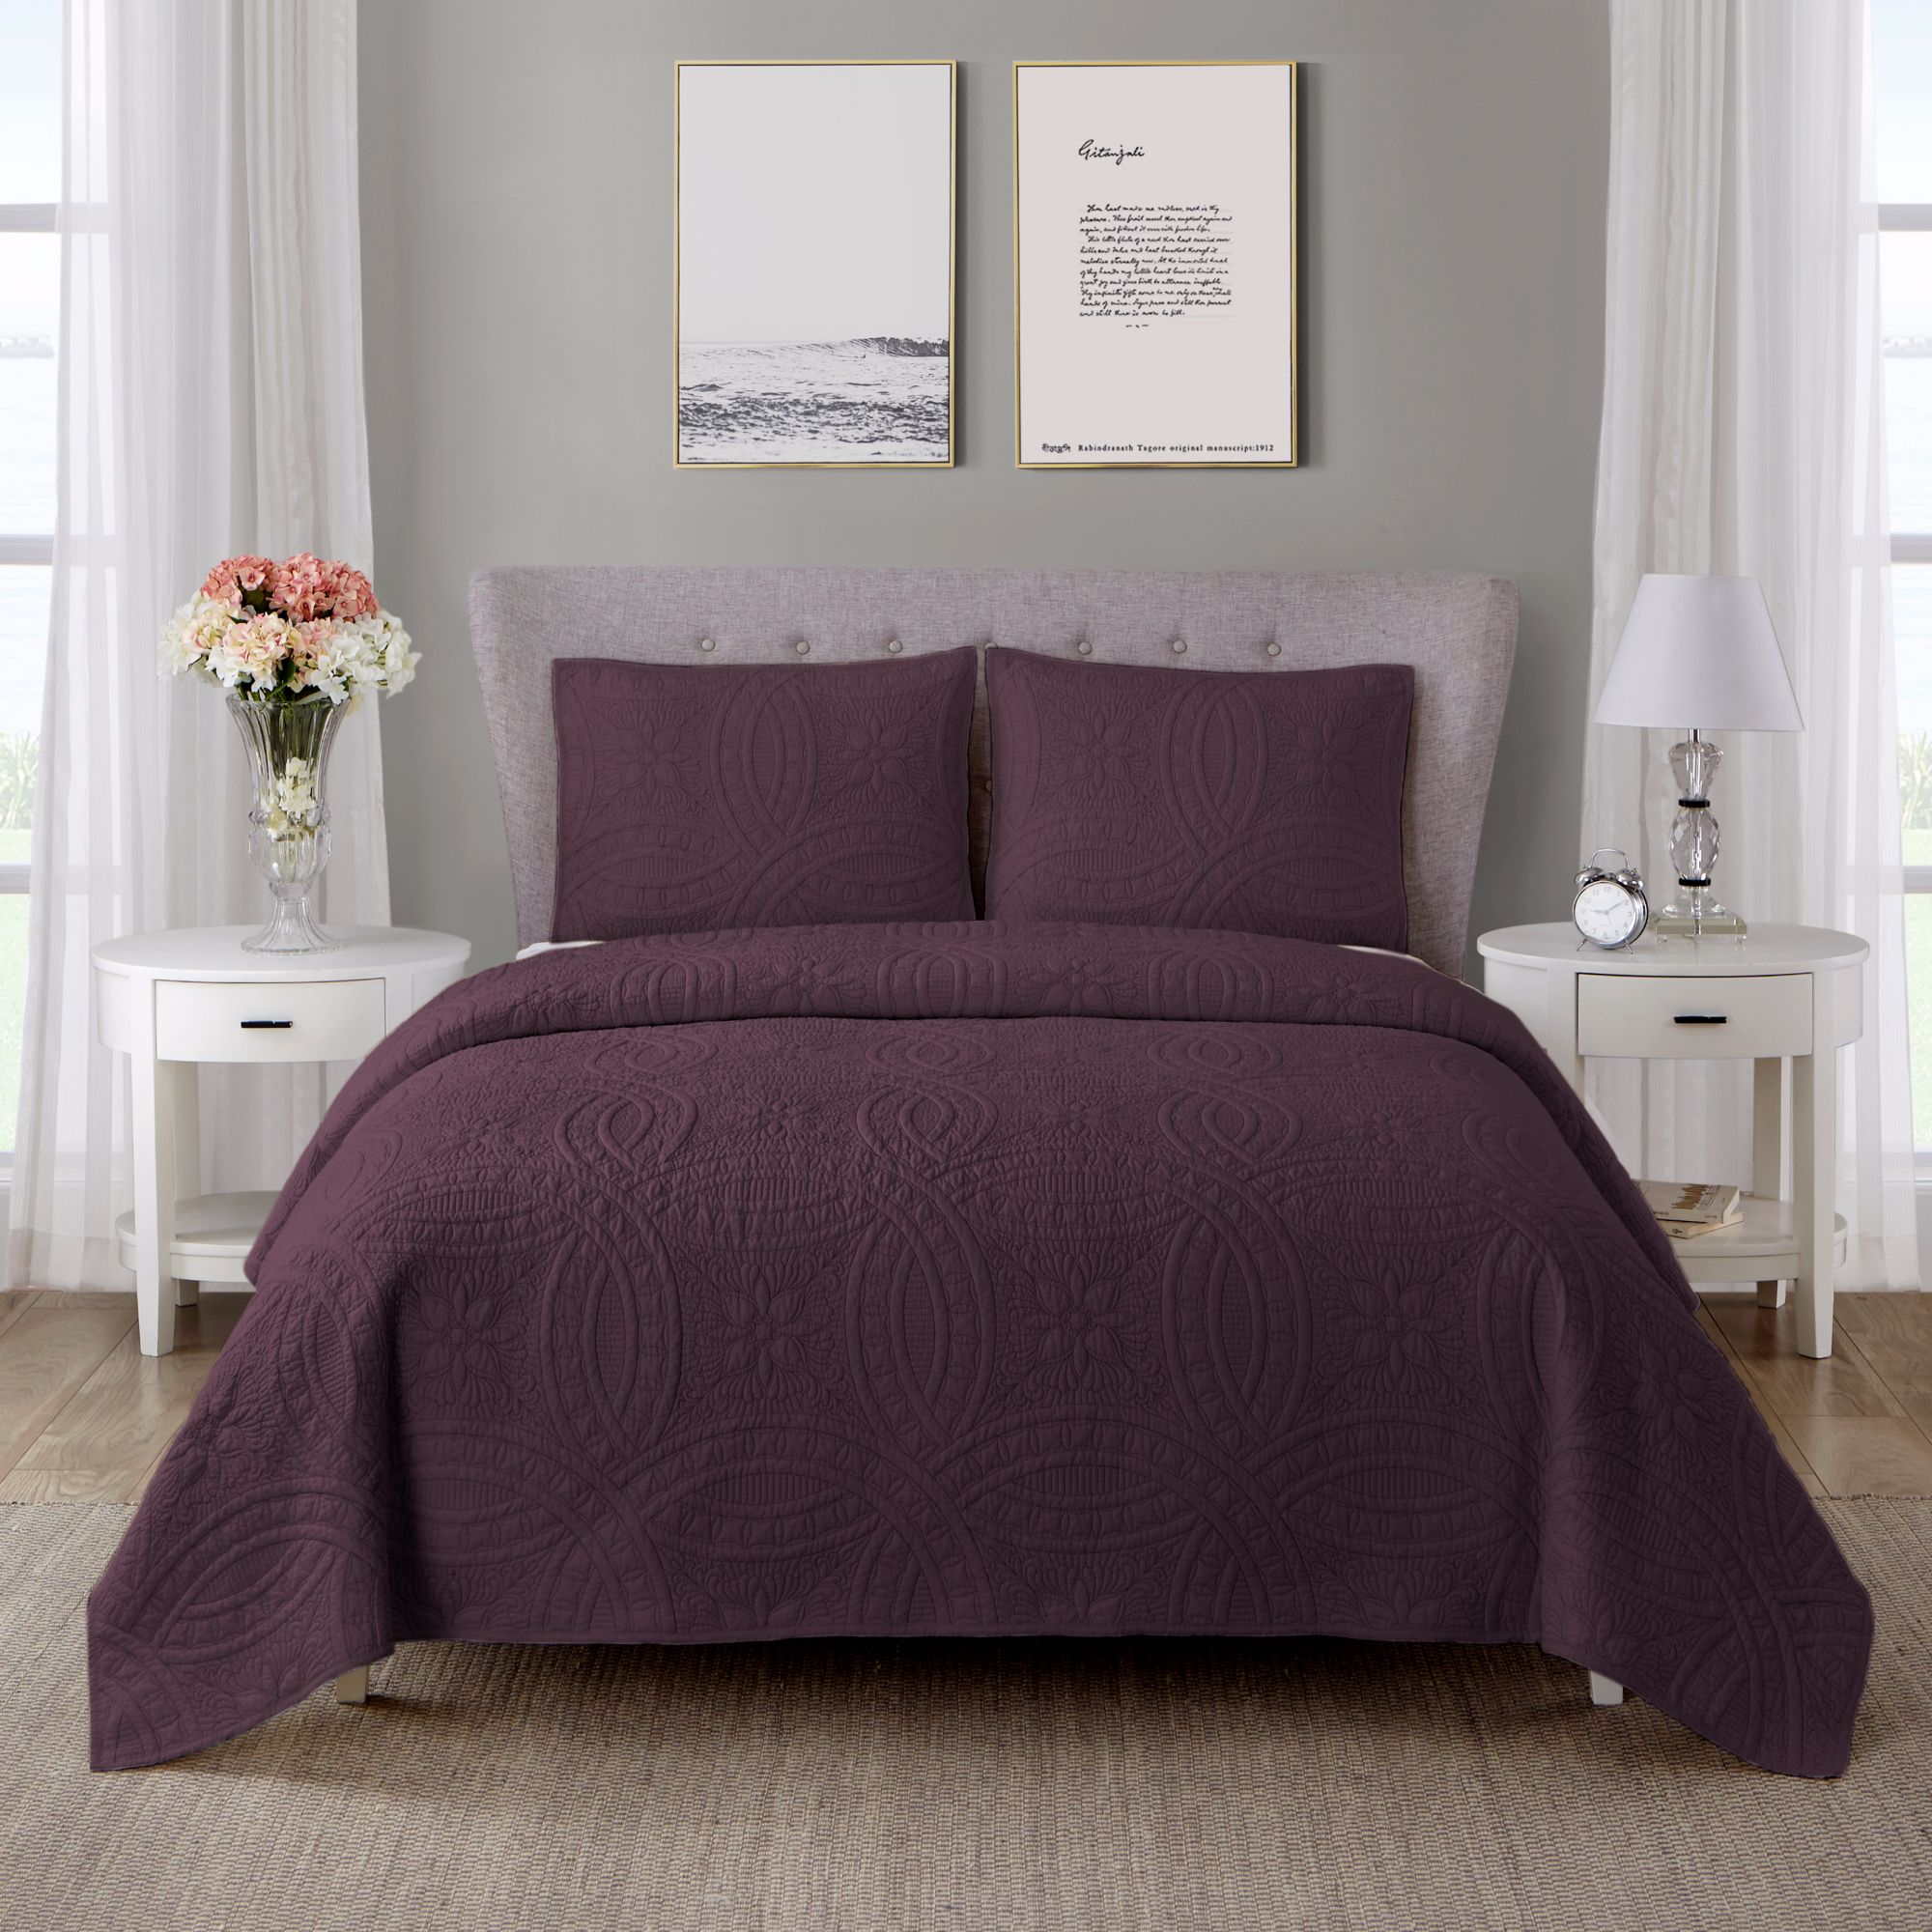 duvets comforters duvet king deep lilac lime of quilt full pretty size purple and sets inserts winsome grey dark set twin white comforter cotton cover light black green cabinet bedroom covers sheets silver super bedding mint nice plum walmart